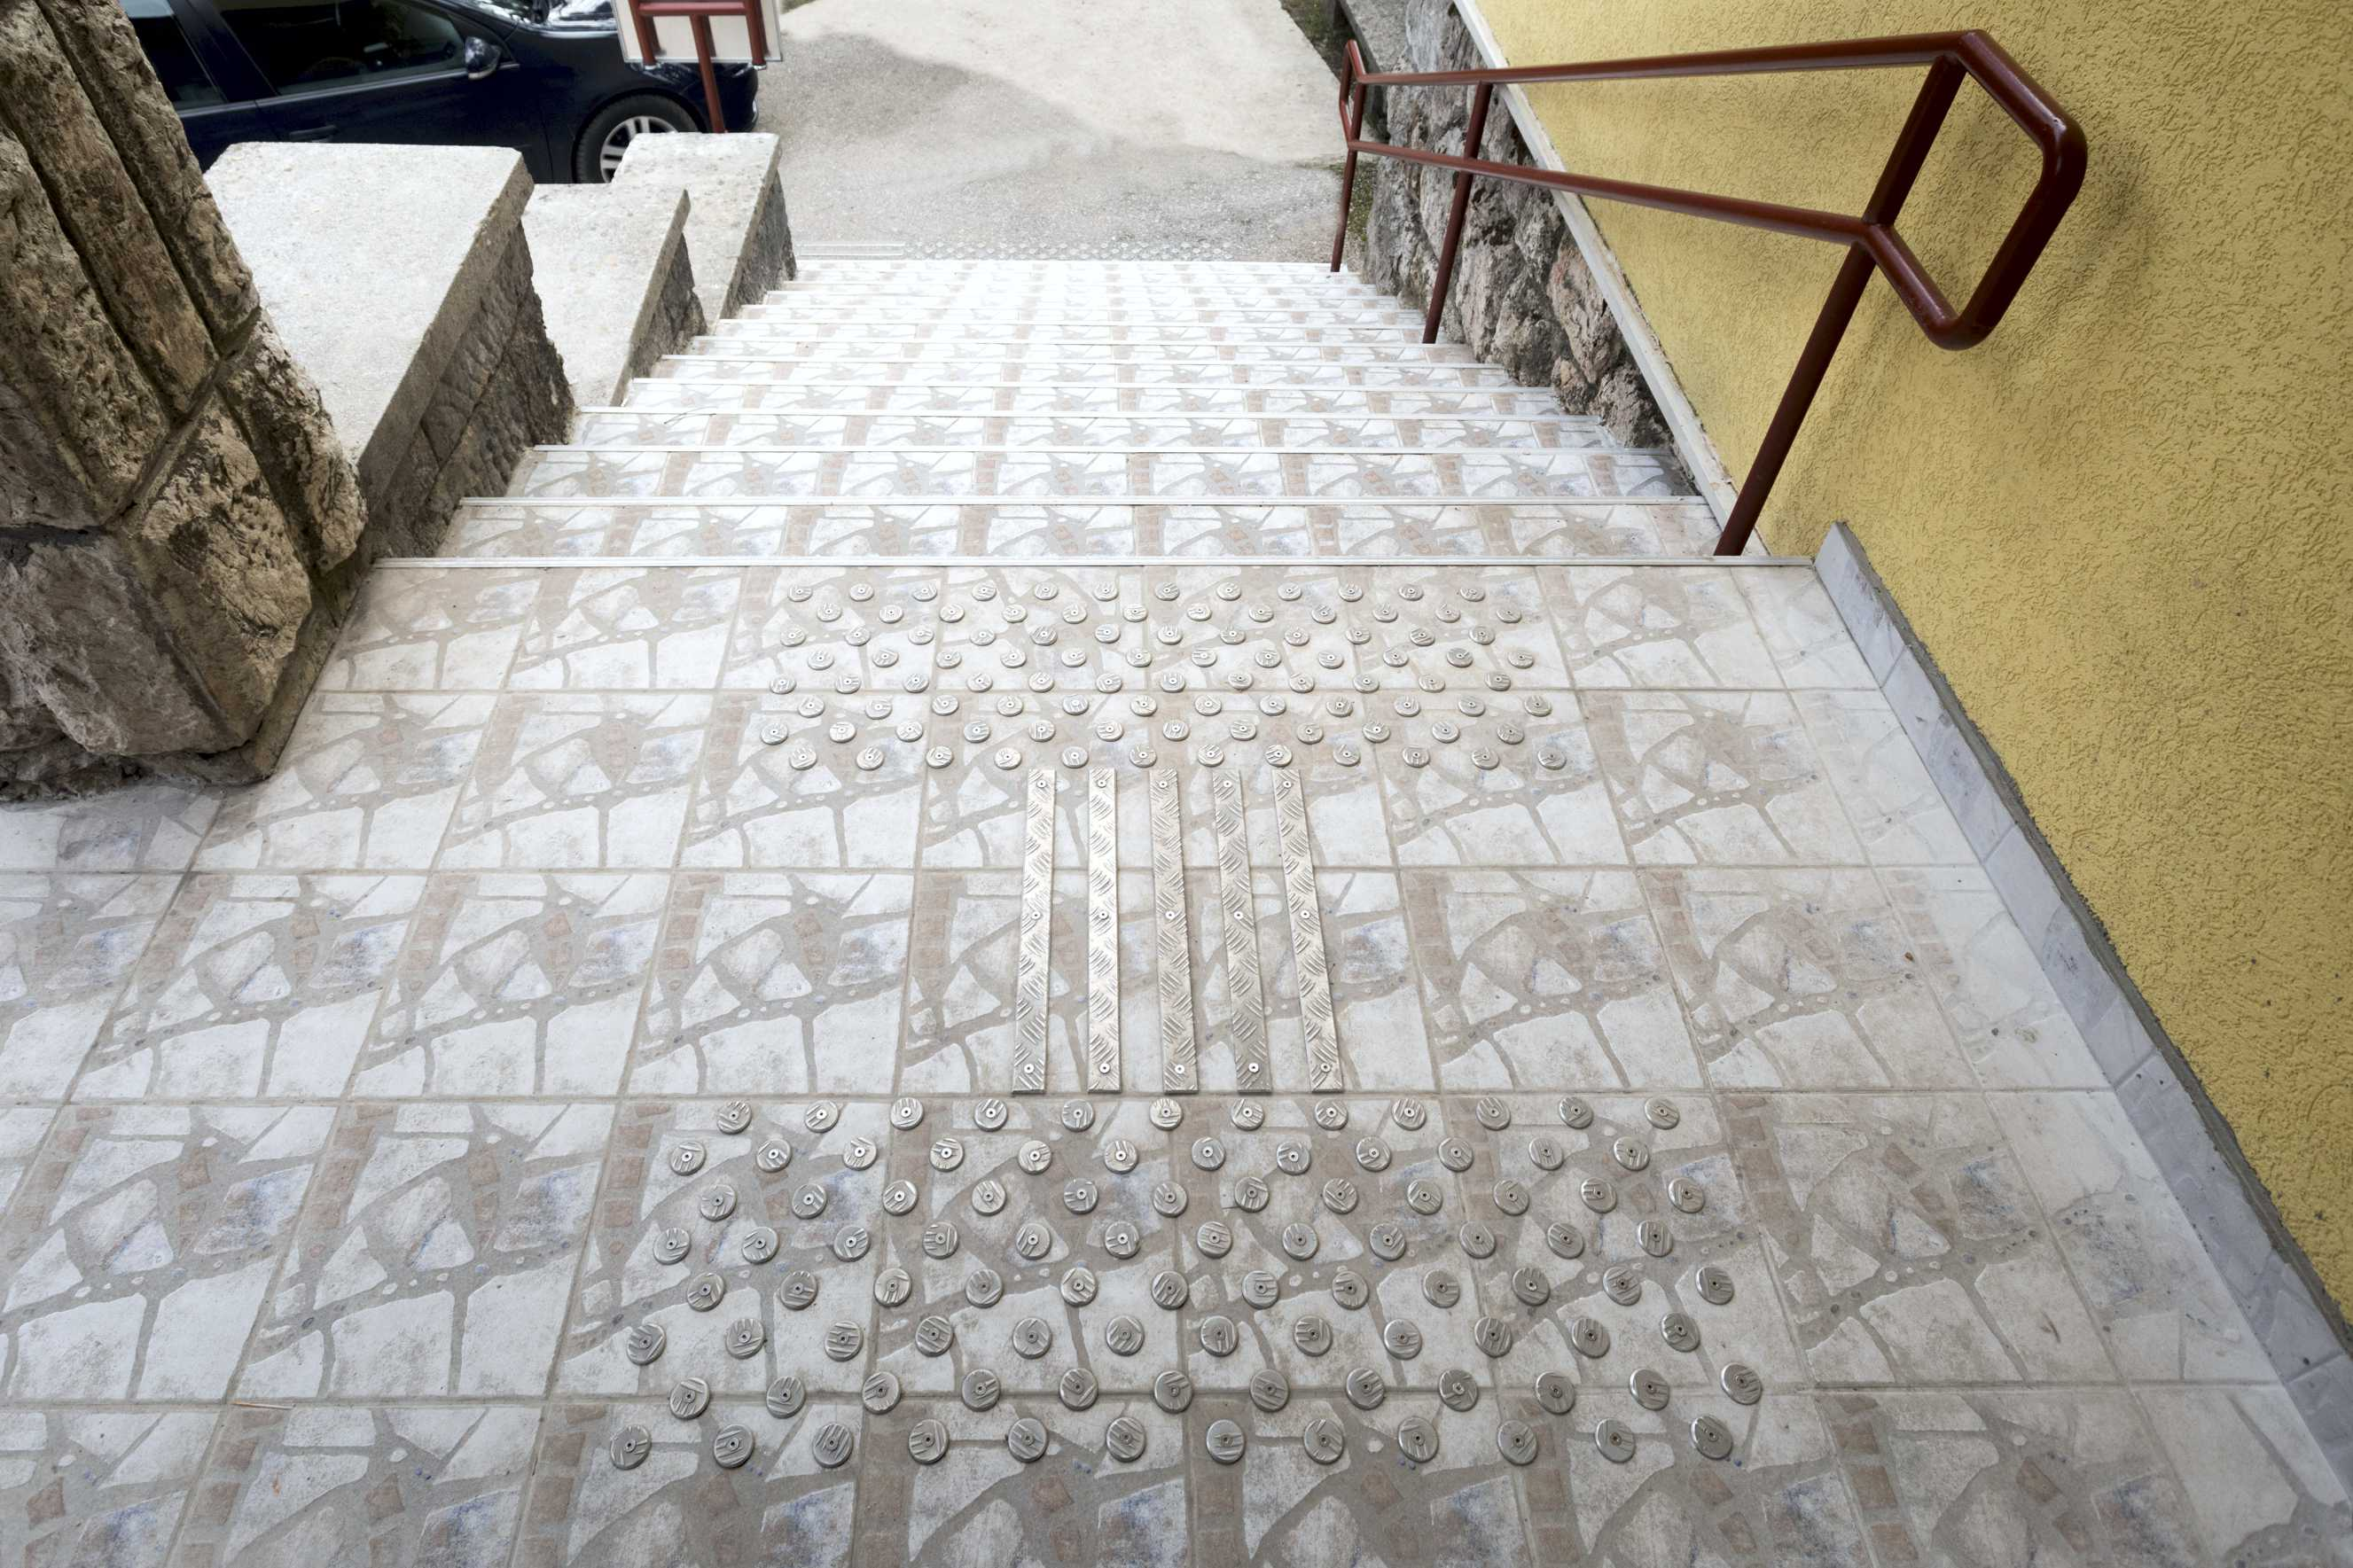 Tactile path outside